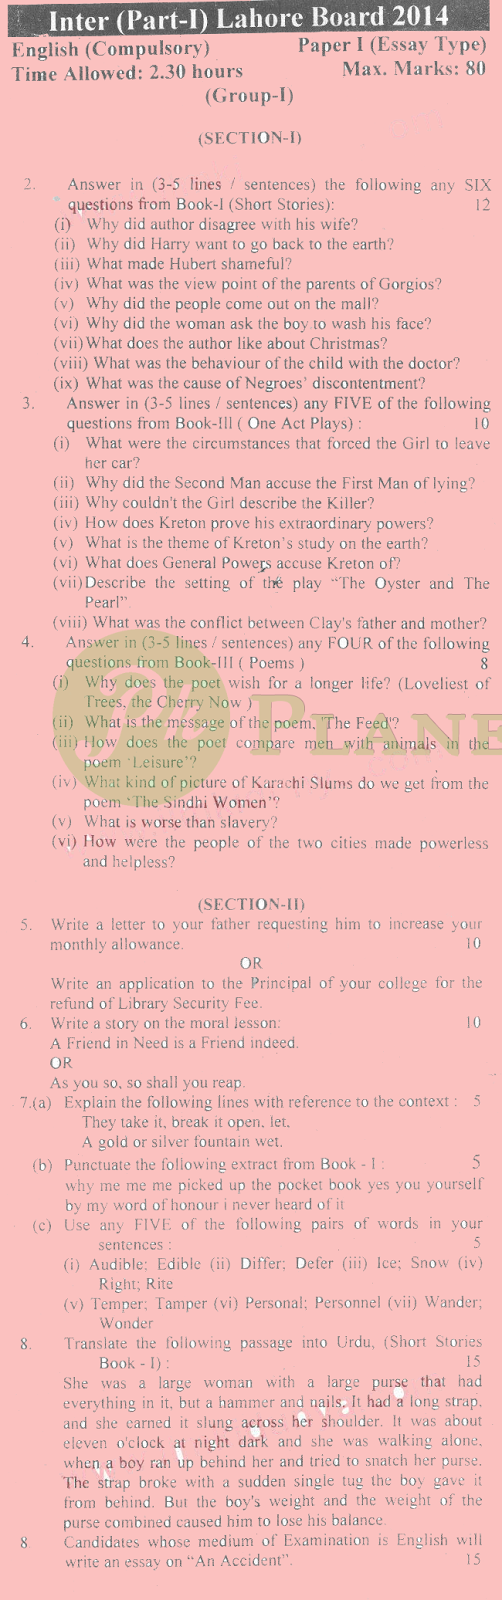 Inter Part 1 English Past Papers Lahore Board 2014